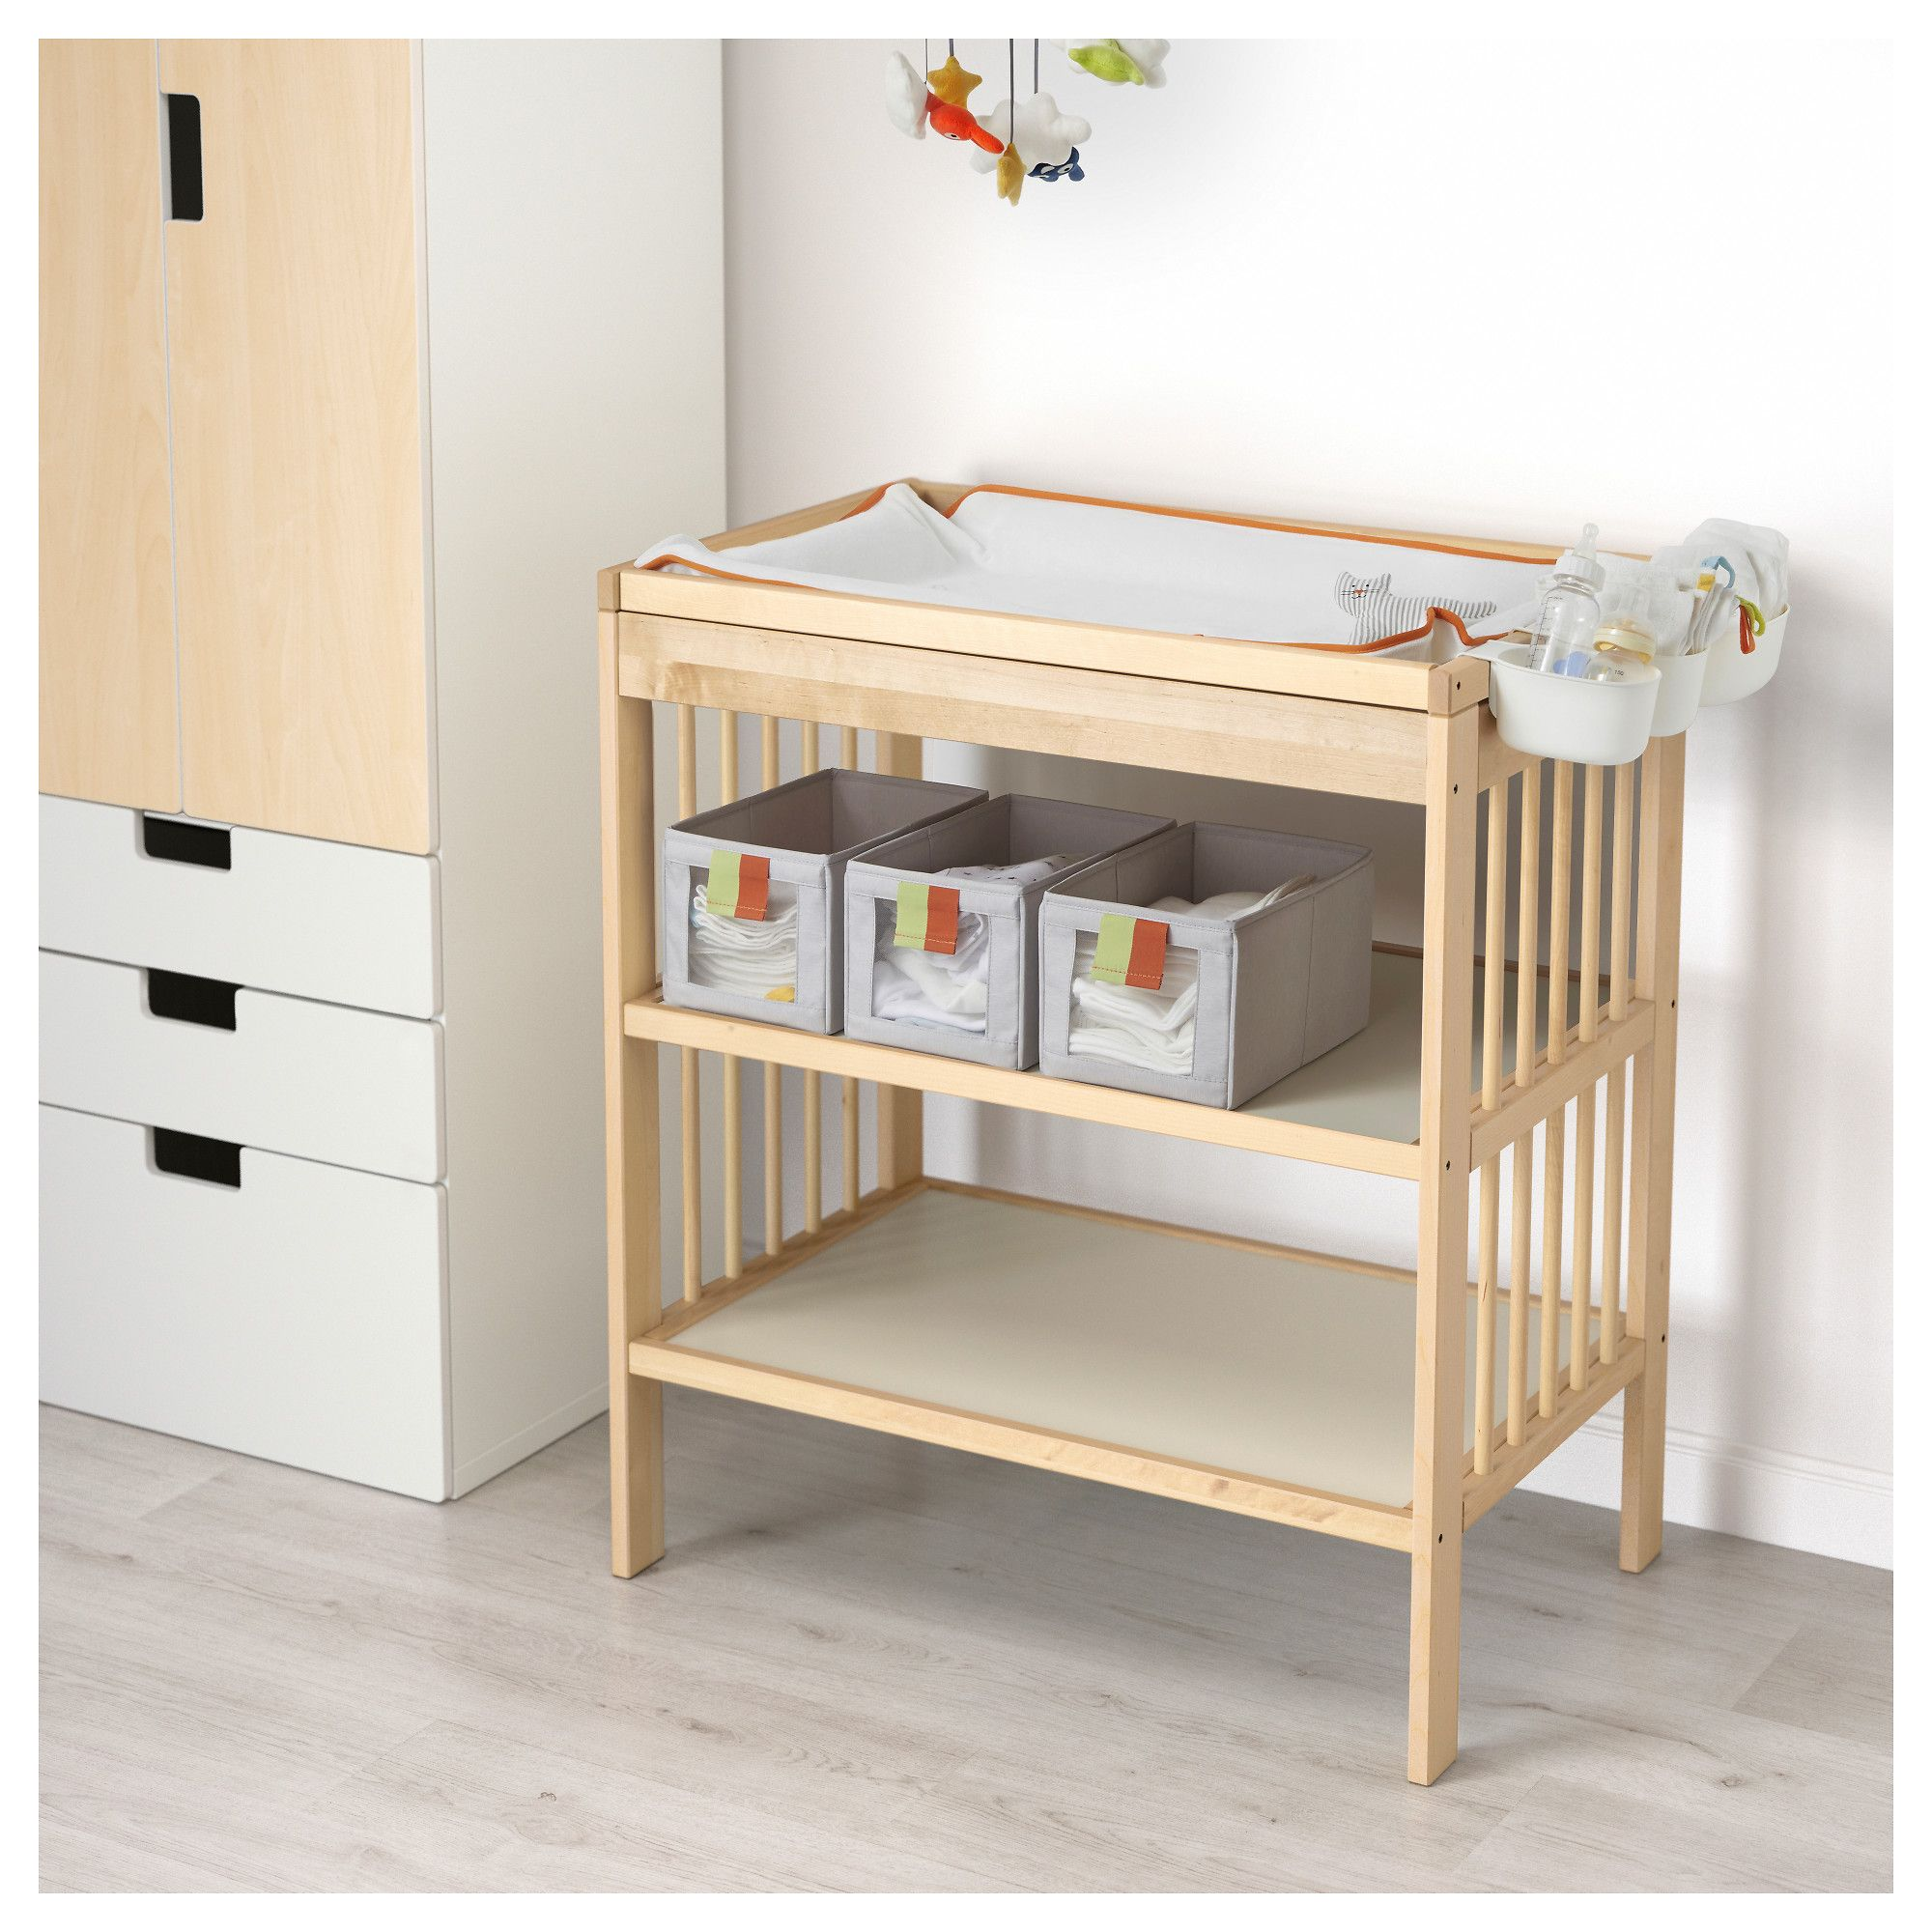 Ikea Gulliver Changing Table Comfortable Height For The Baby